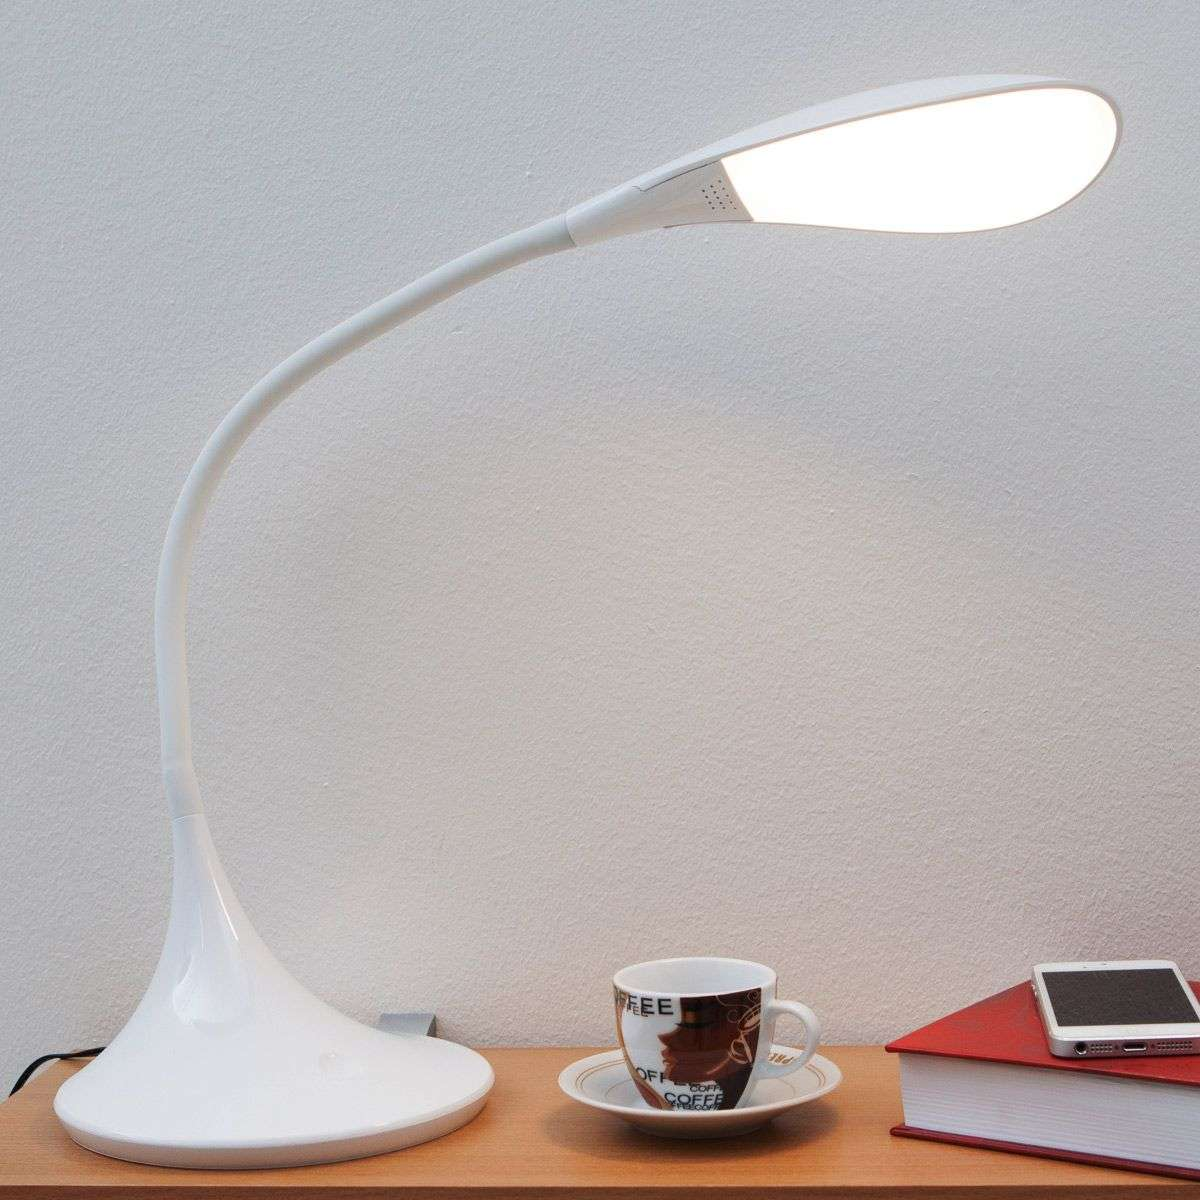 Josia, Dimmable LED Desk Lamp In White 9643002 31